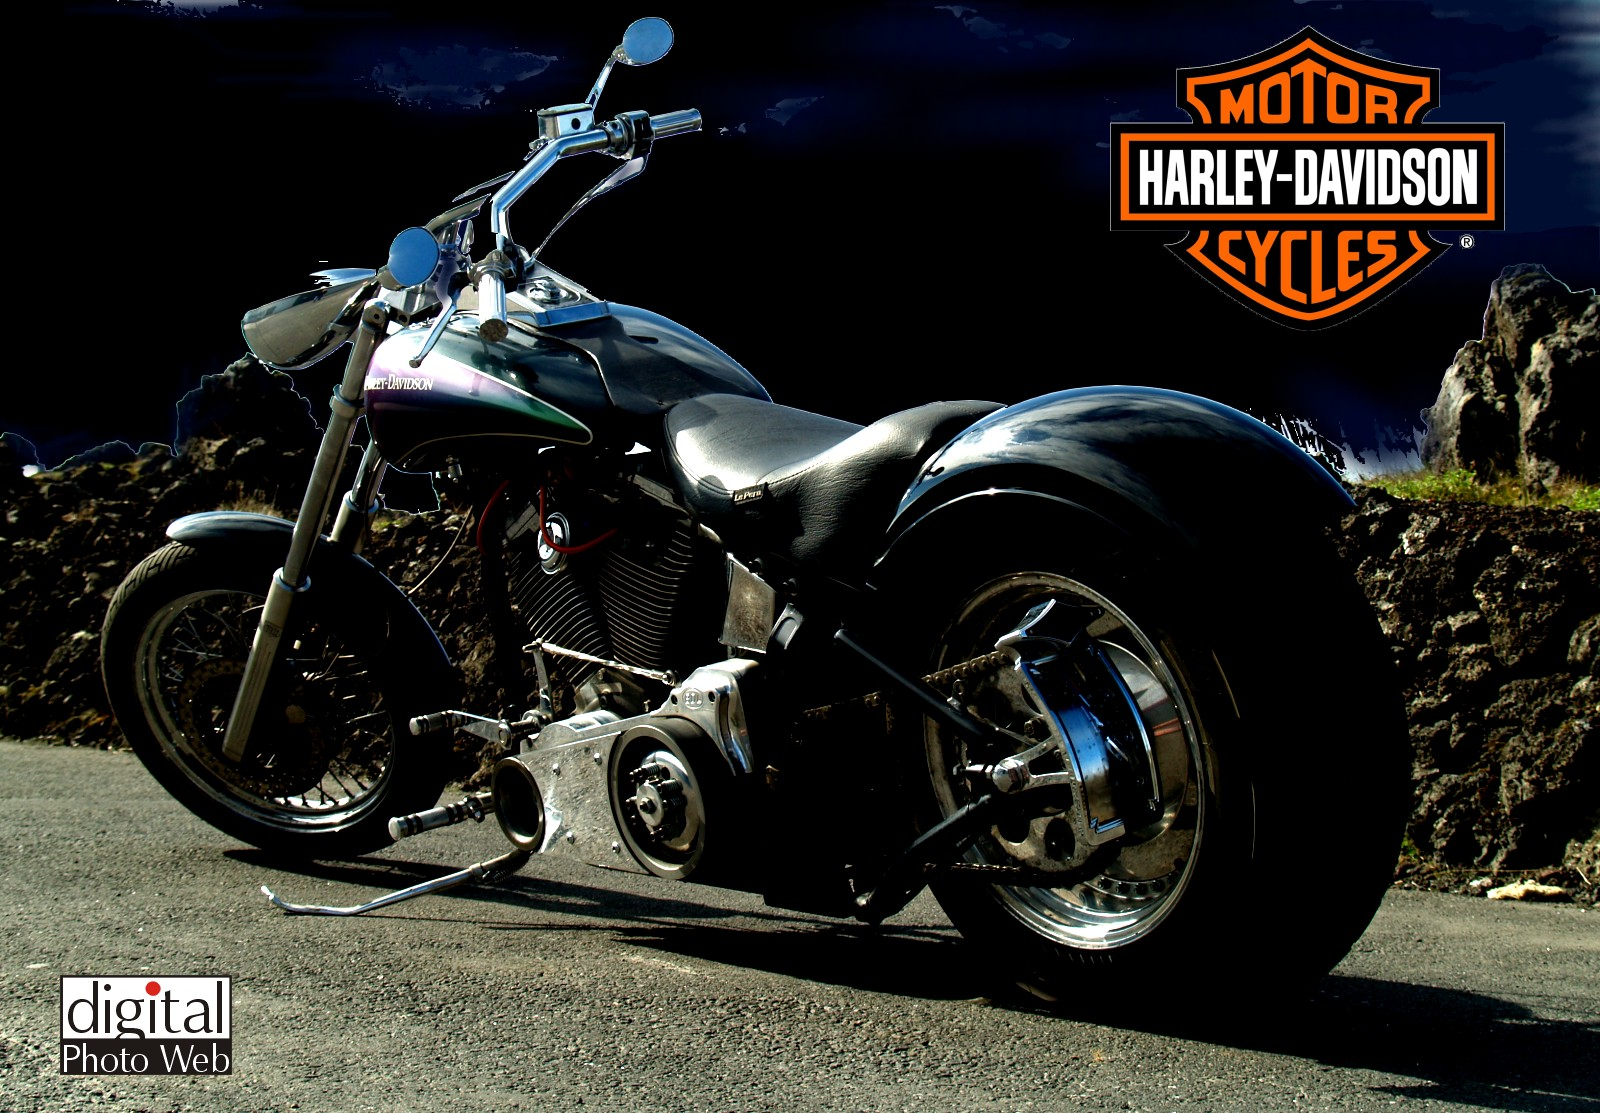 harley davidson wallpaper motor cycles